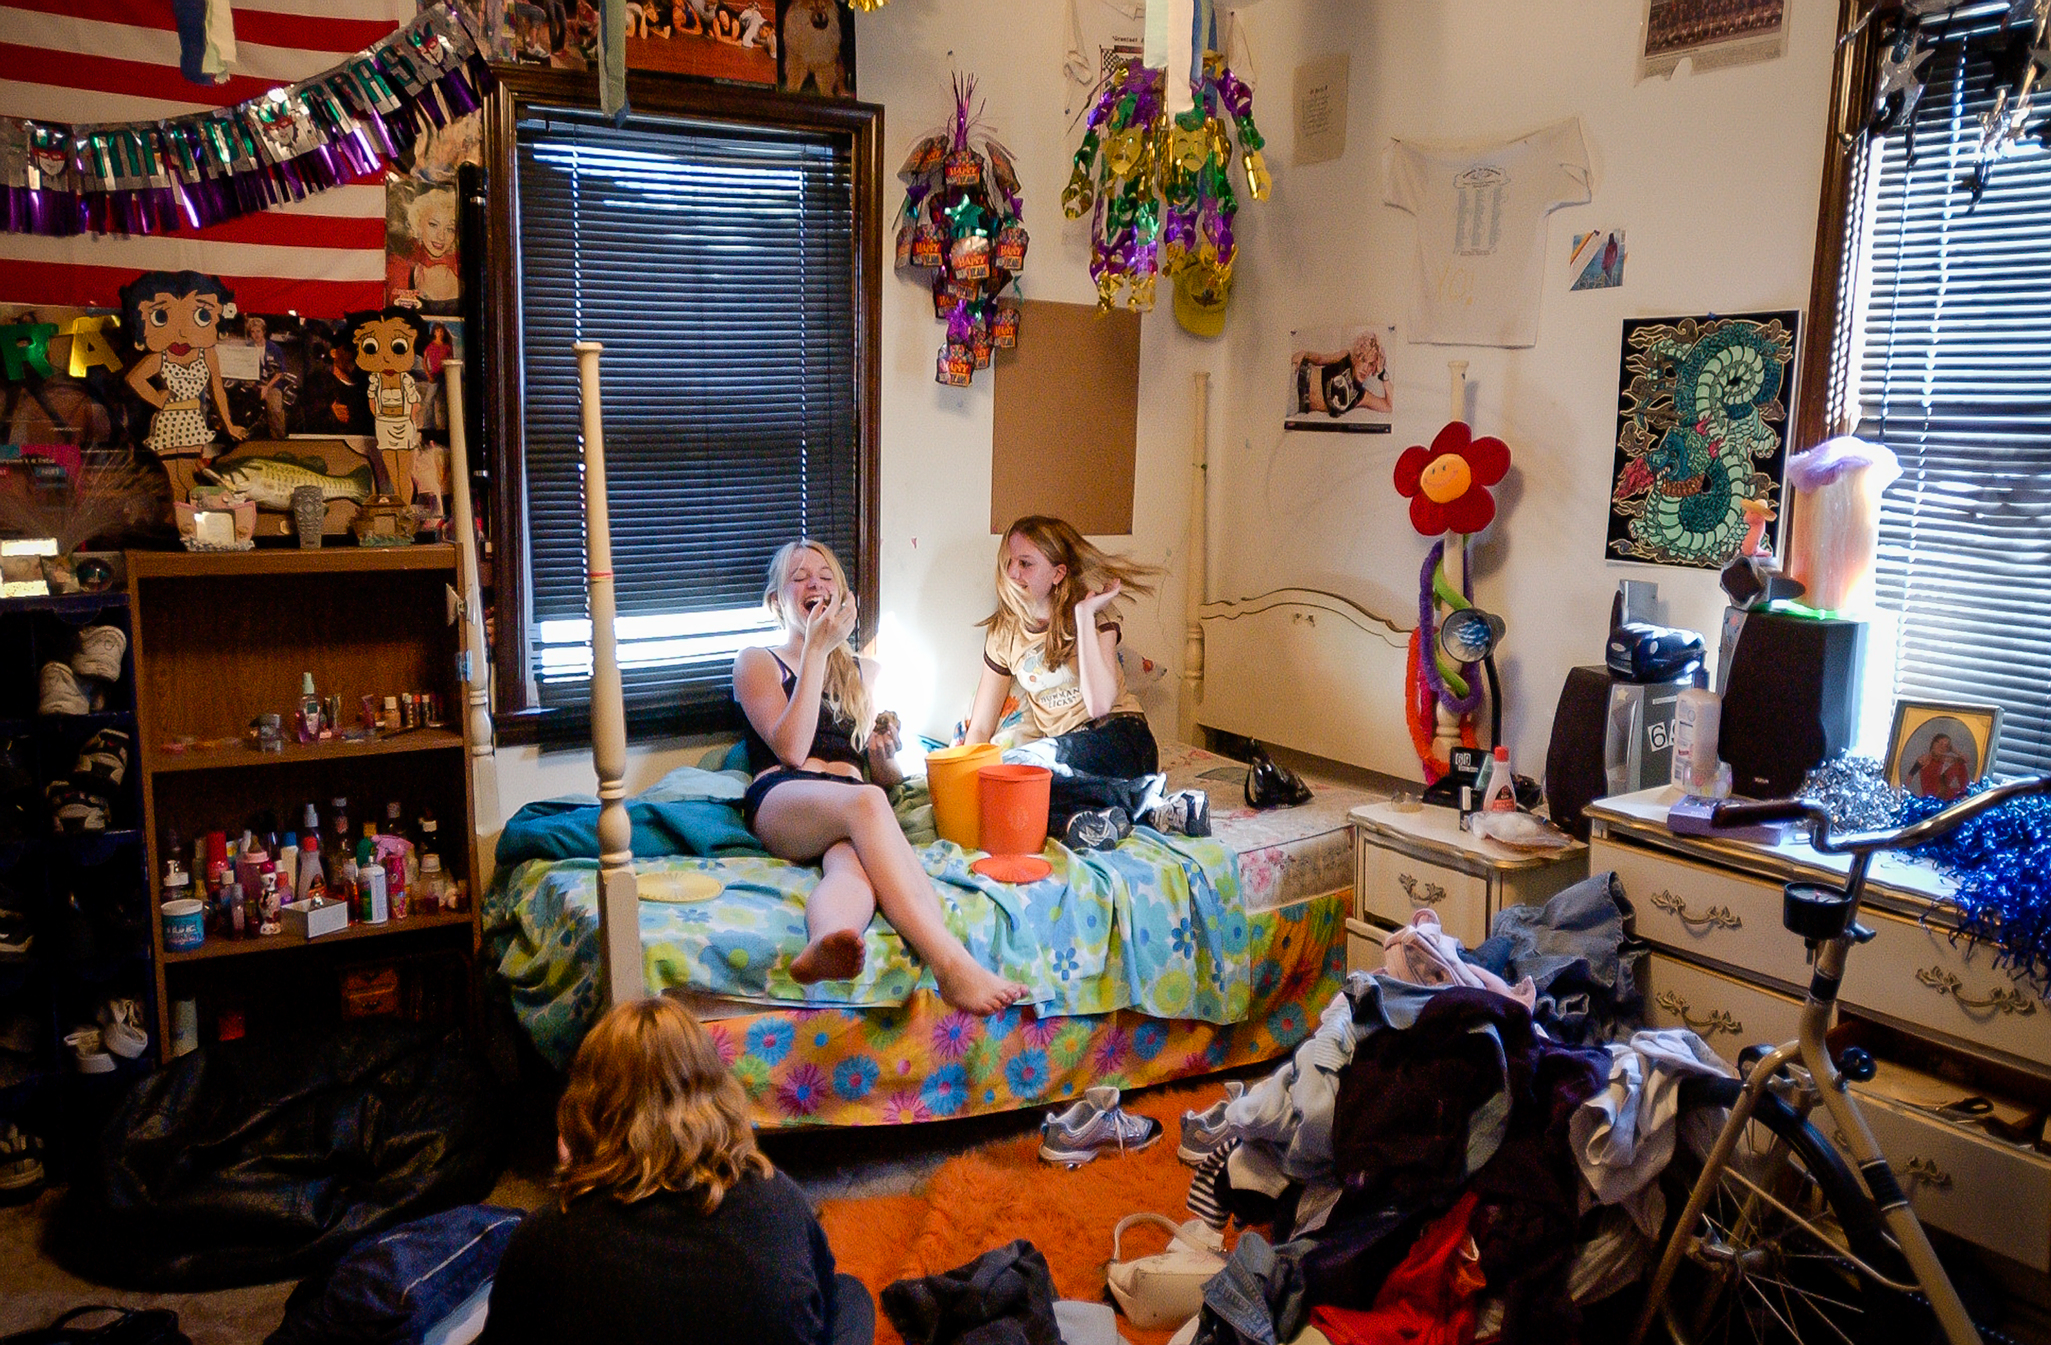 Spirit, Bre, and Brittney share mom's homemade cookies while listening to music. Spirit's room is filled with pictures of Nelly, Britney Spears, fast cars, professional wrestlers and her immense wardrobe.